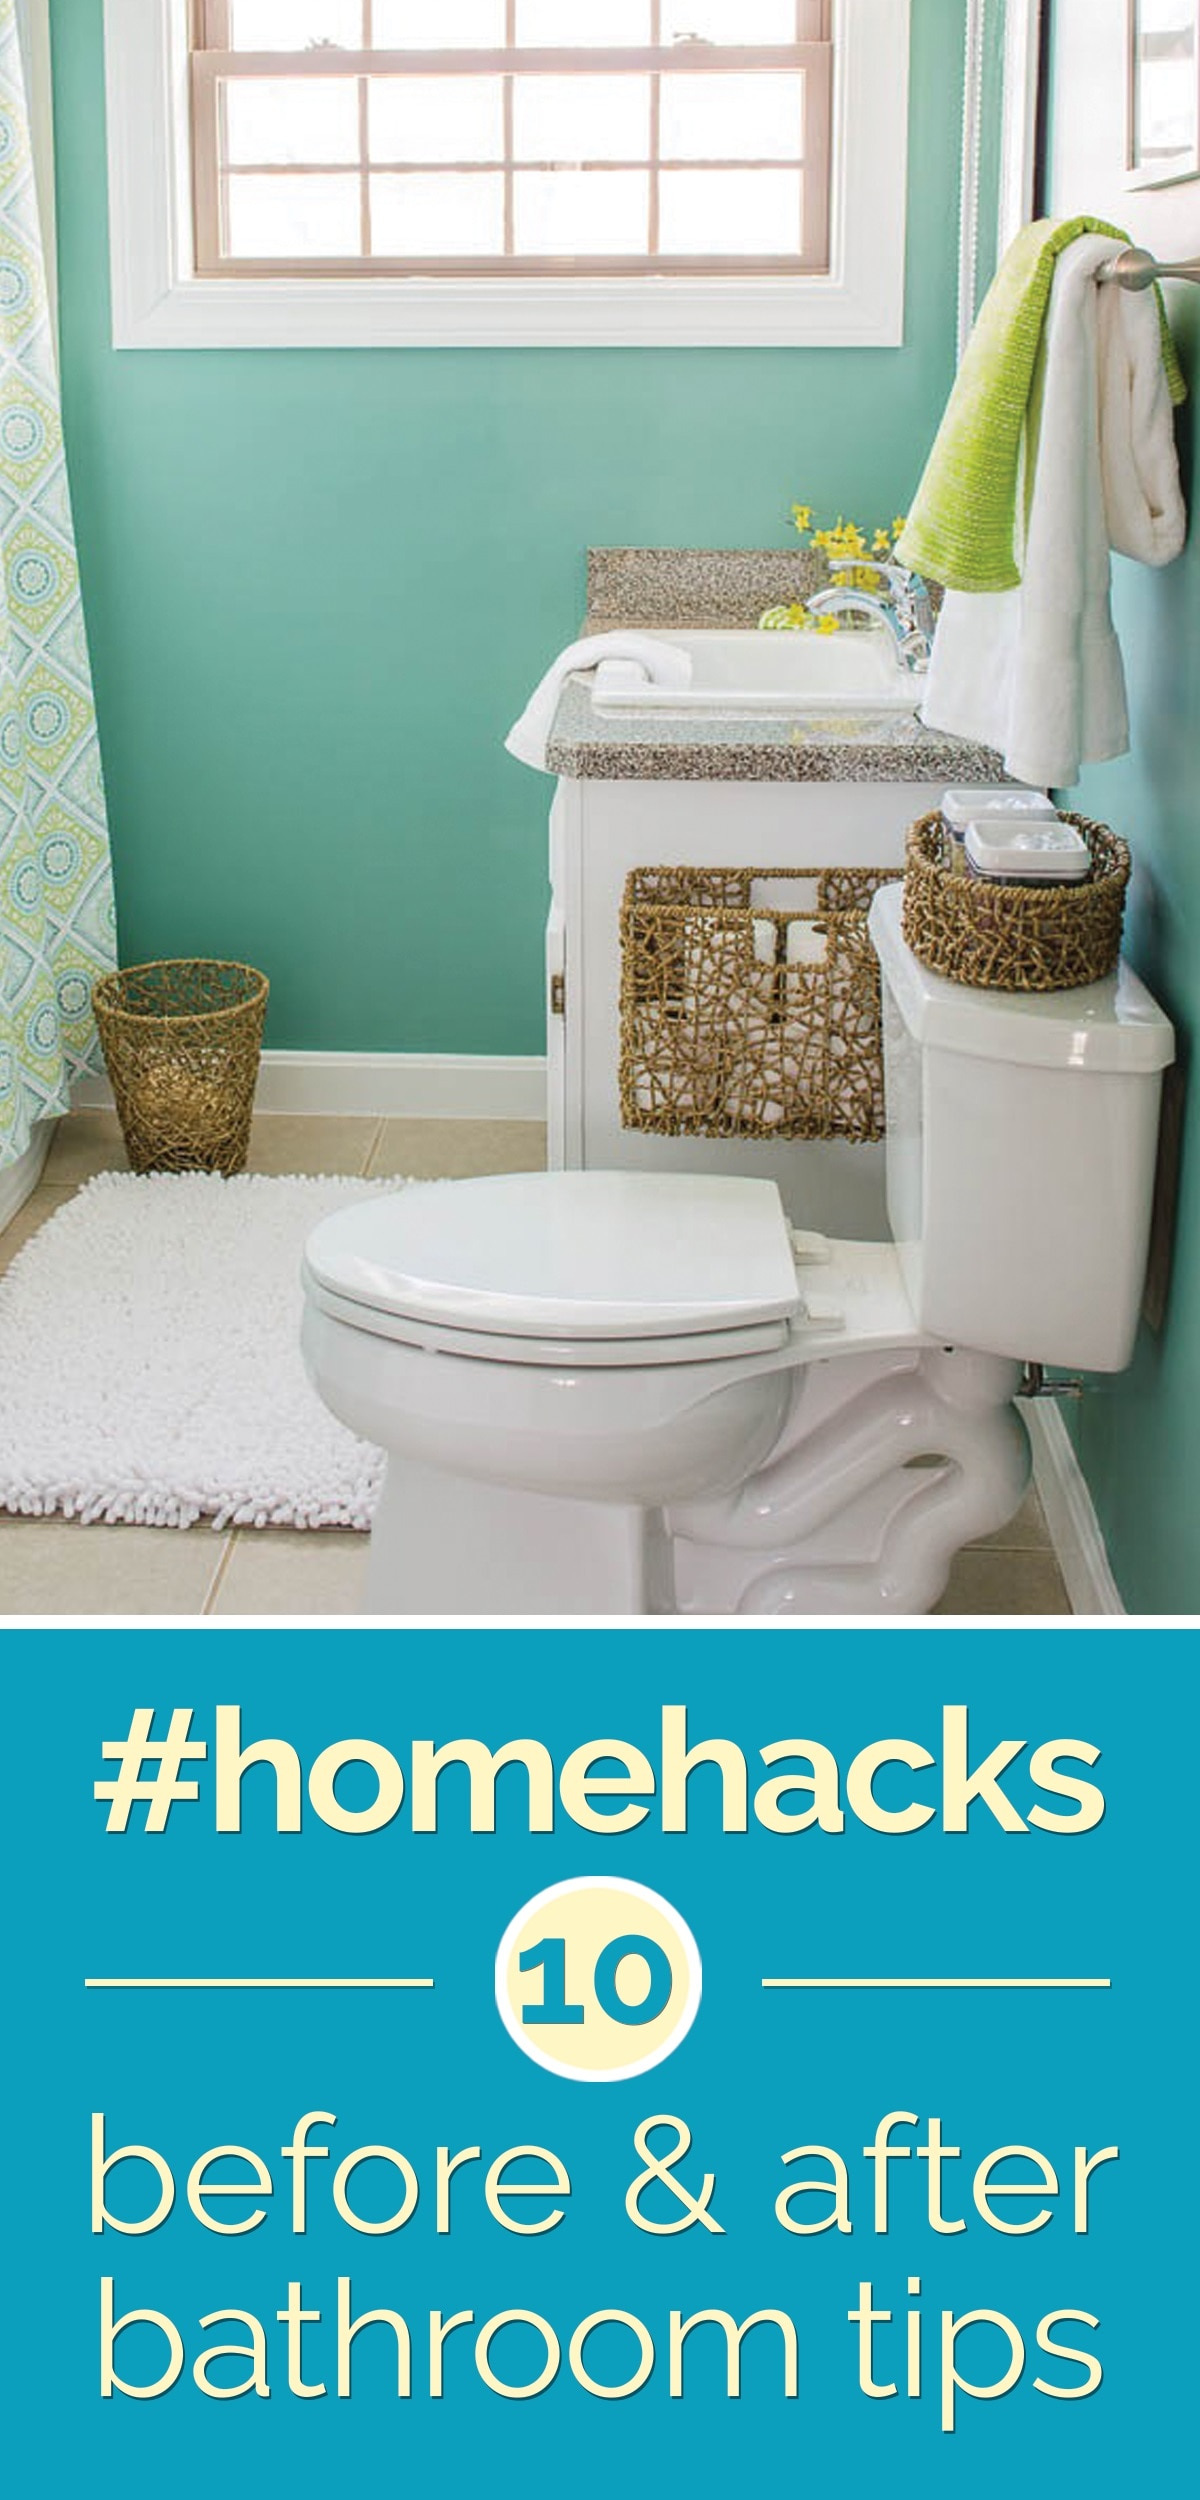 Home Hacks: 10 Before & After Bathroom Tips - thegoodstuff